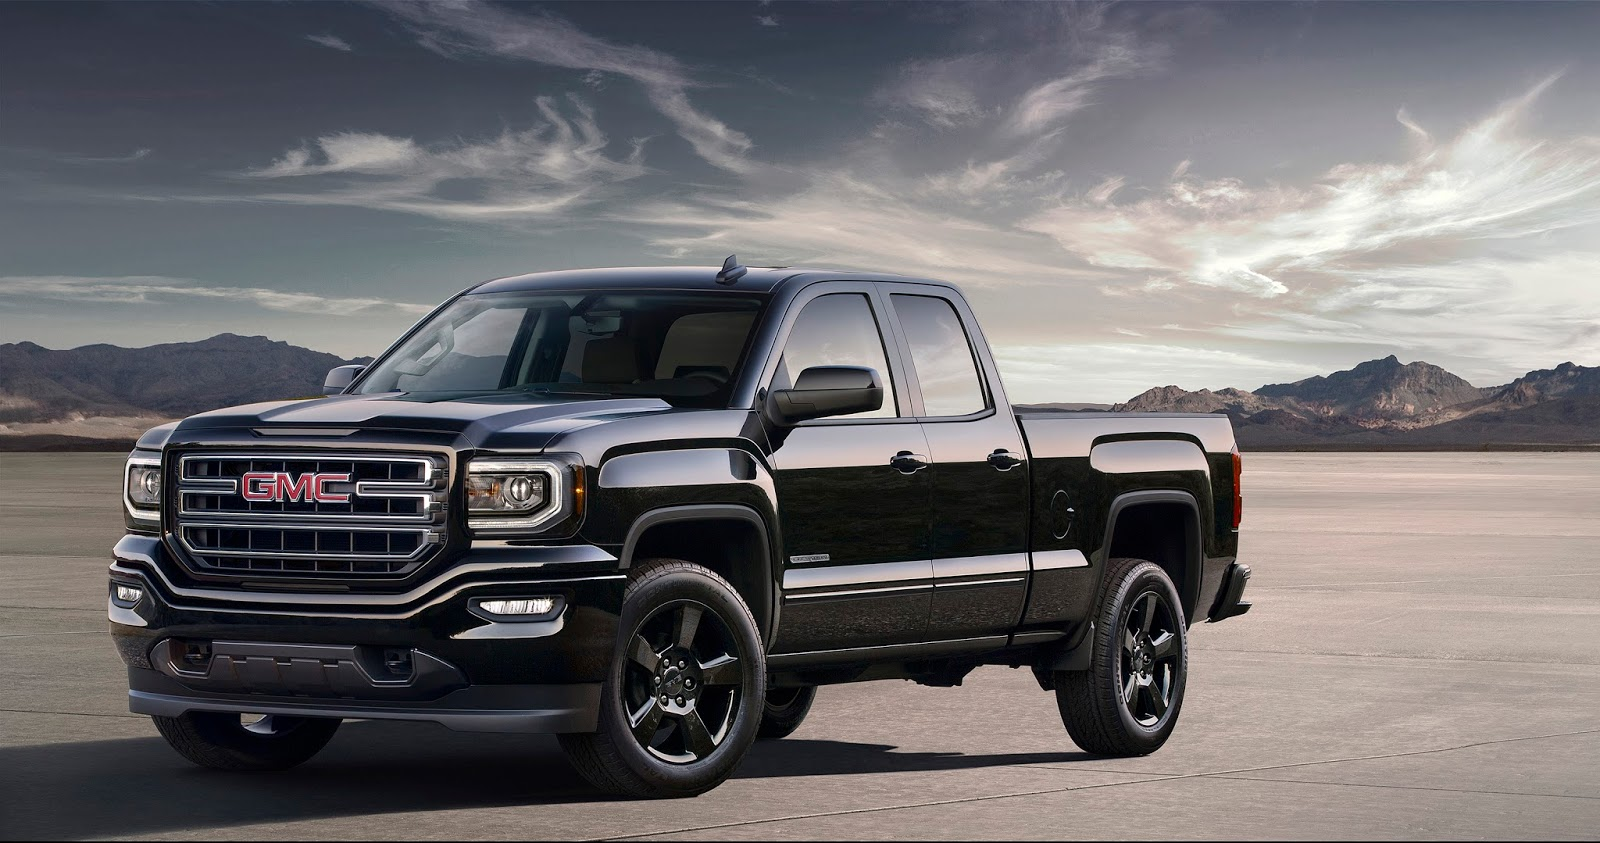 Detroit the popular gmc sierra elevation edition returns for 2016 with the styling enhancements and other features new to the entire sierra 1500 lineup